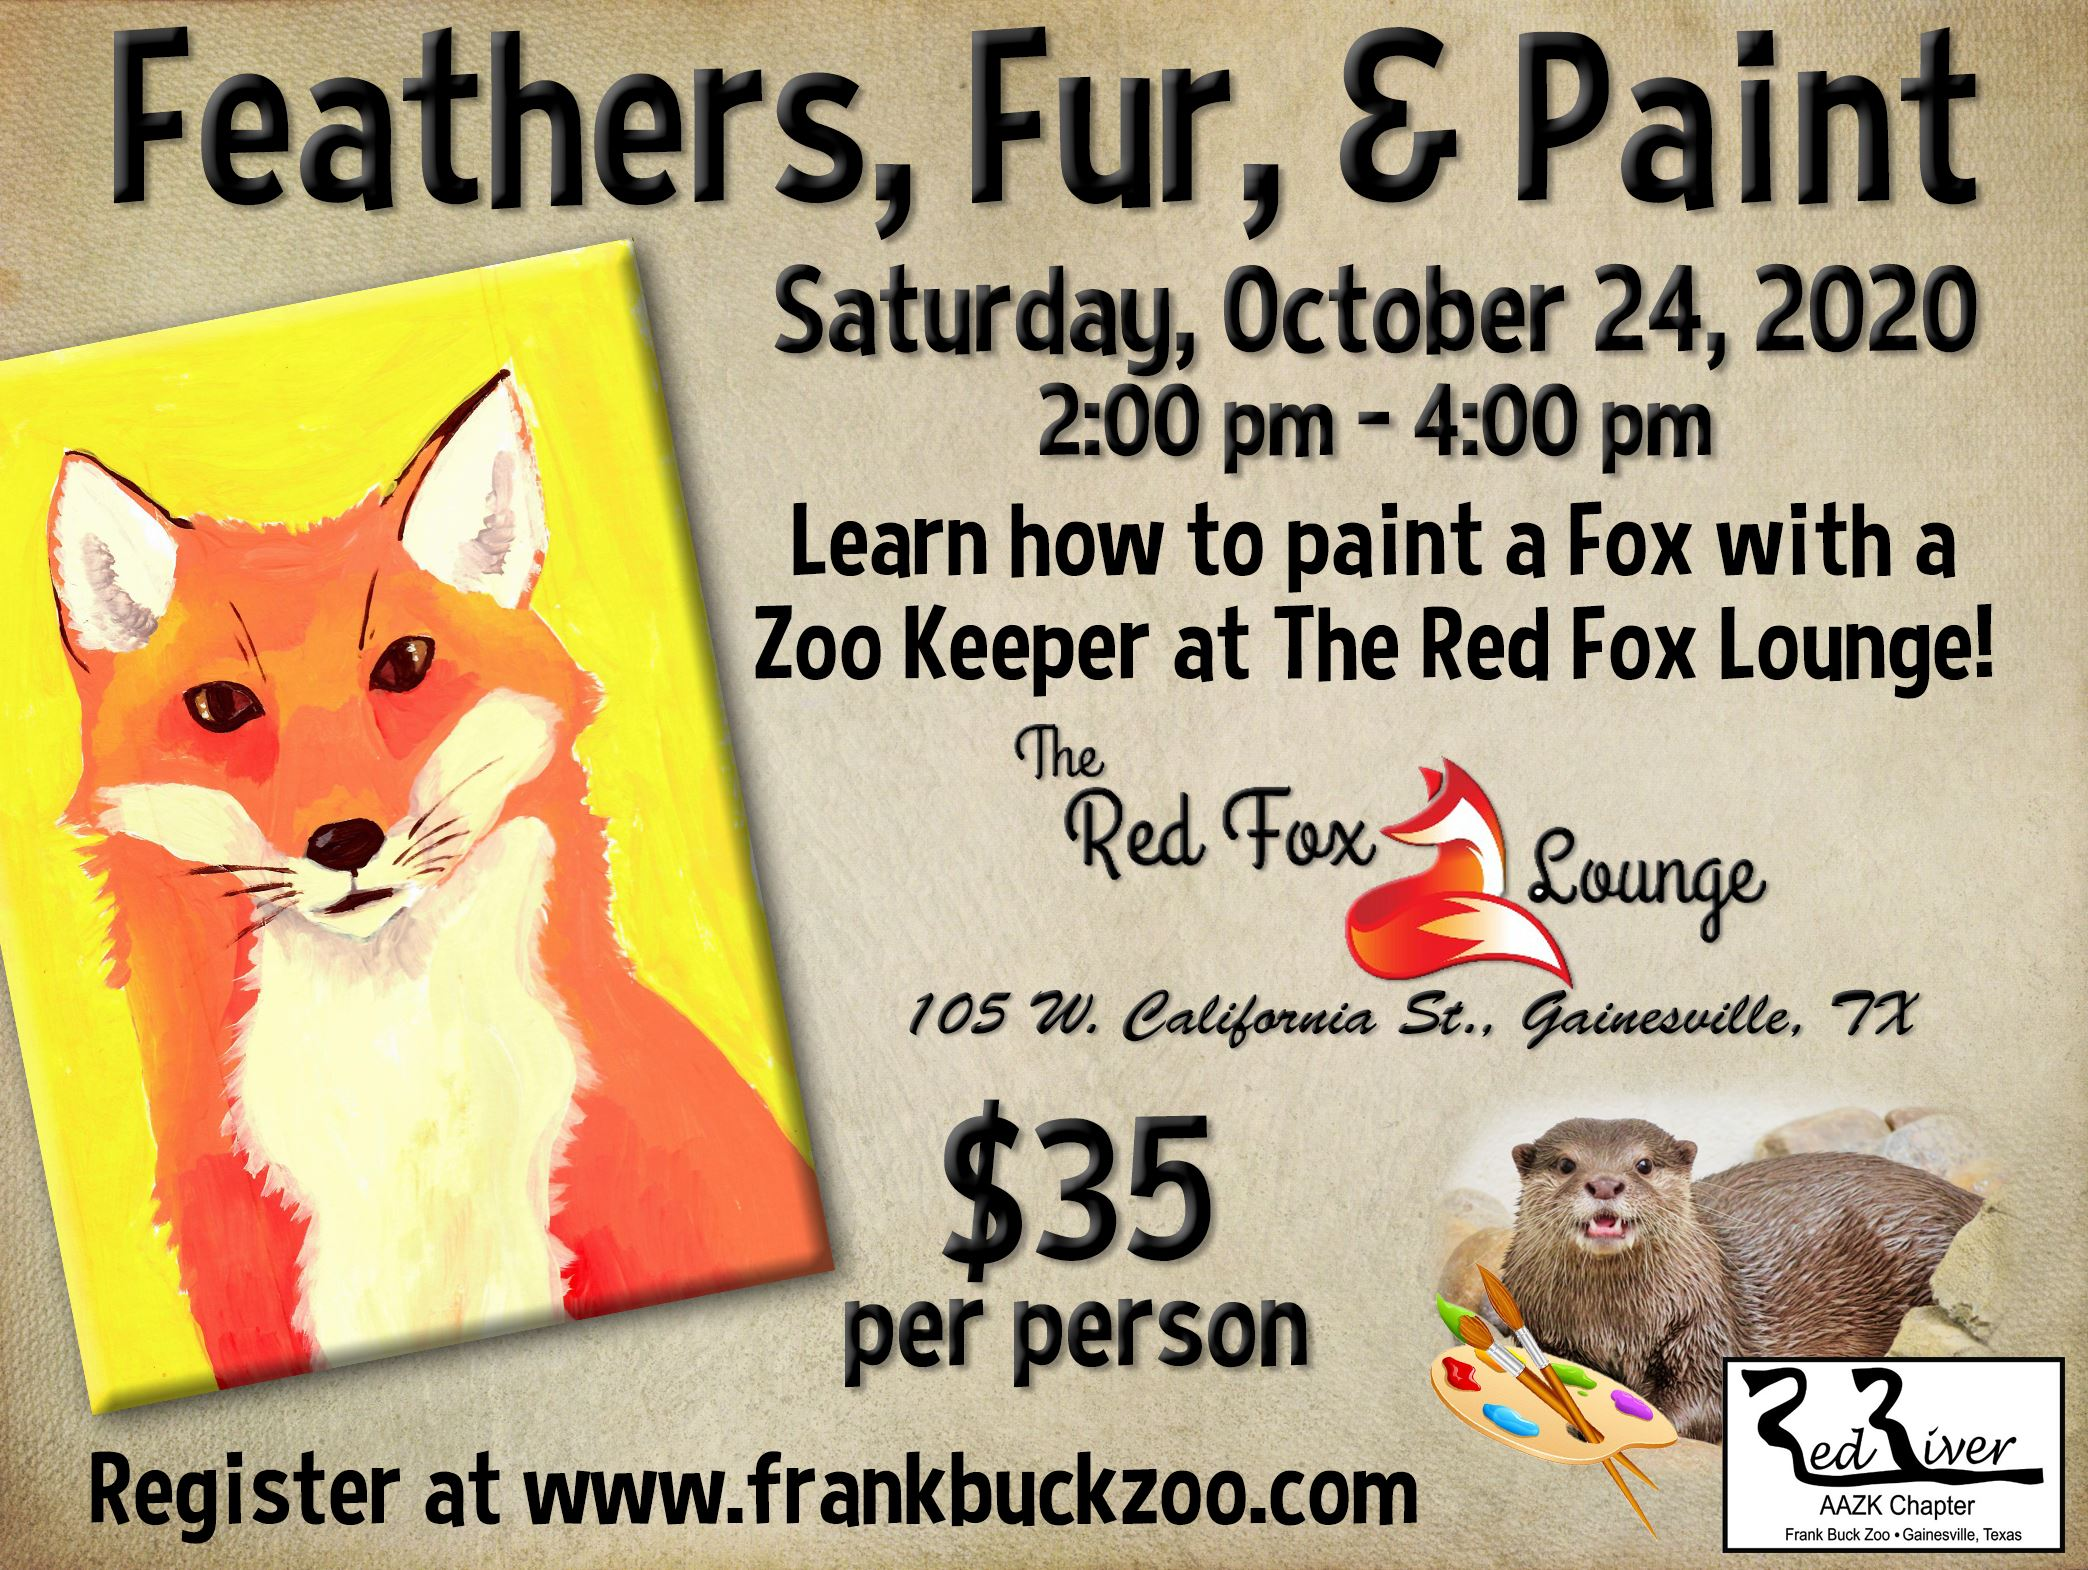 Feathers Fur Paint  Flyer - Fox 10.24.2020